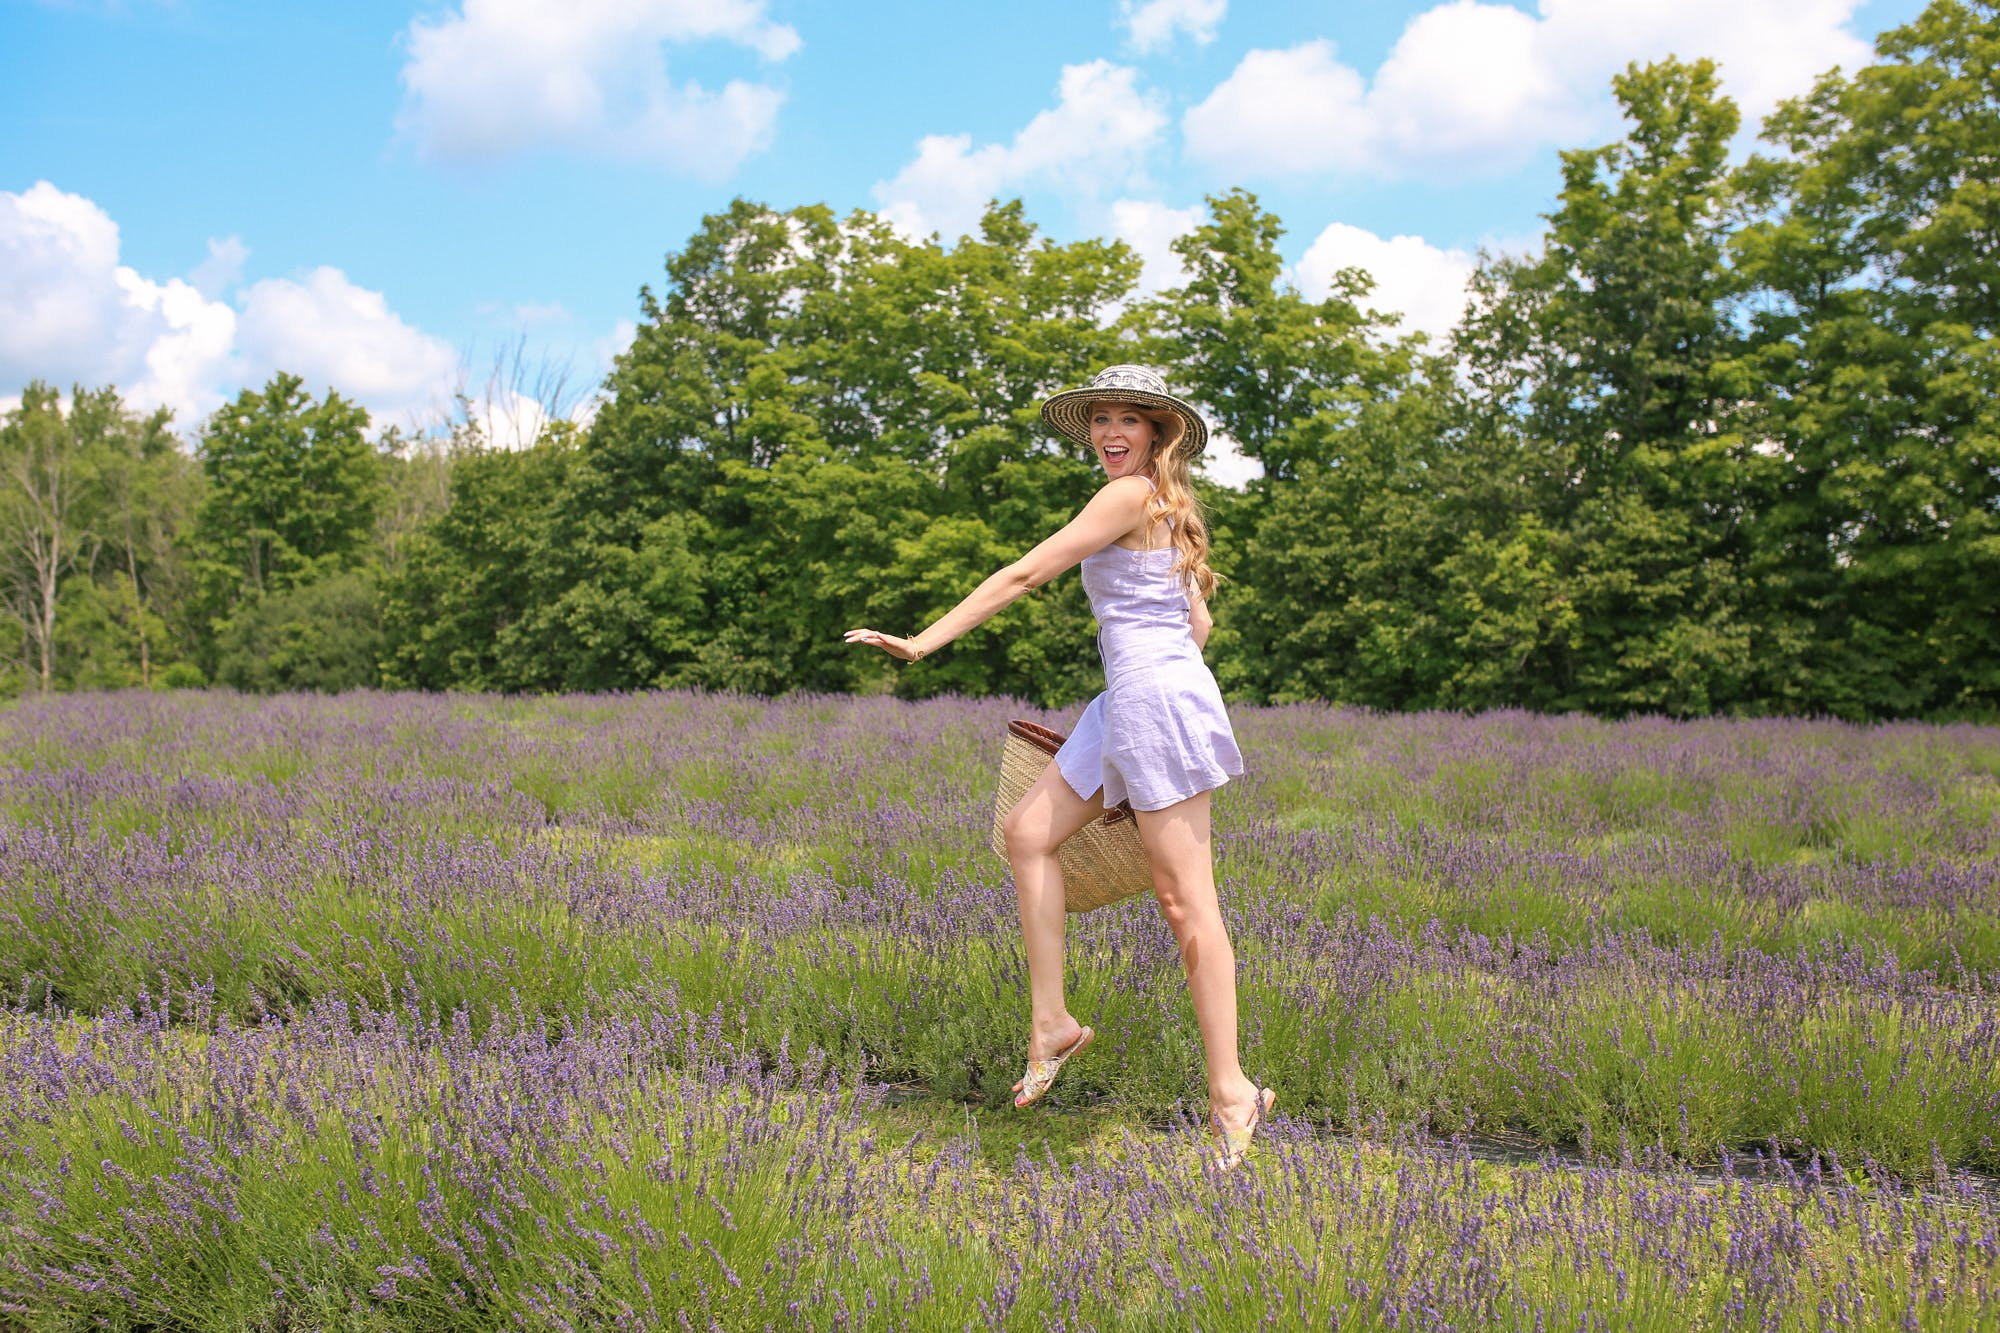 Having fun in lavender fields near Toronto